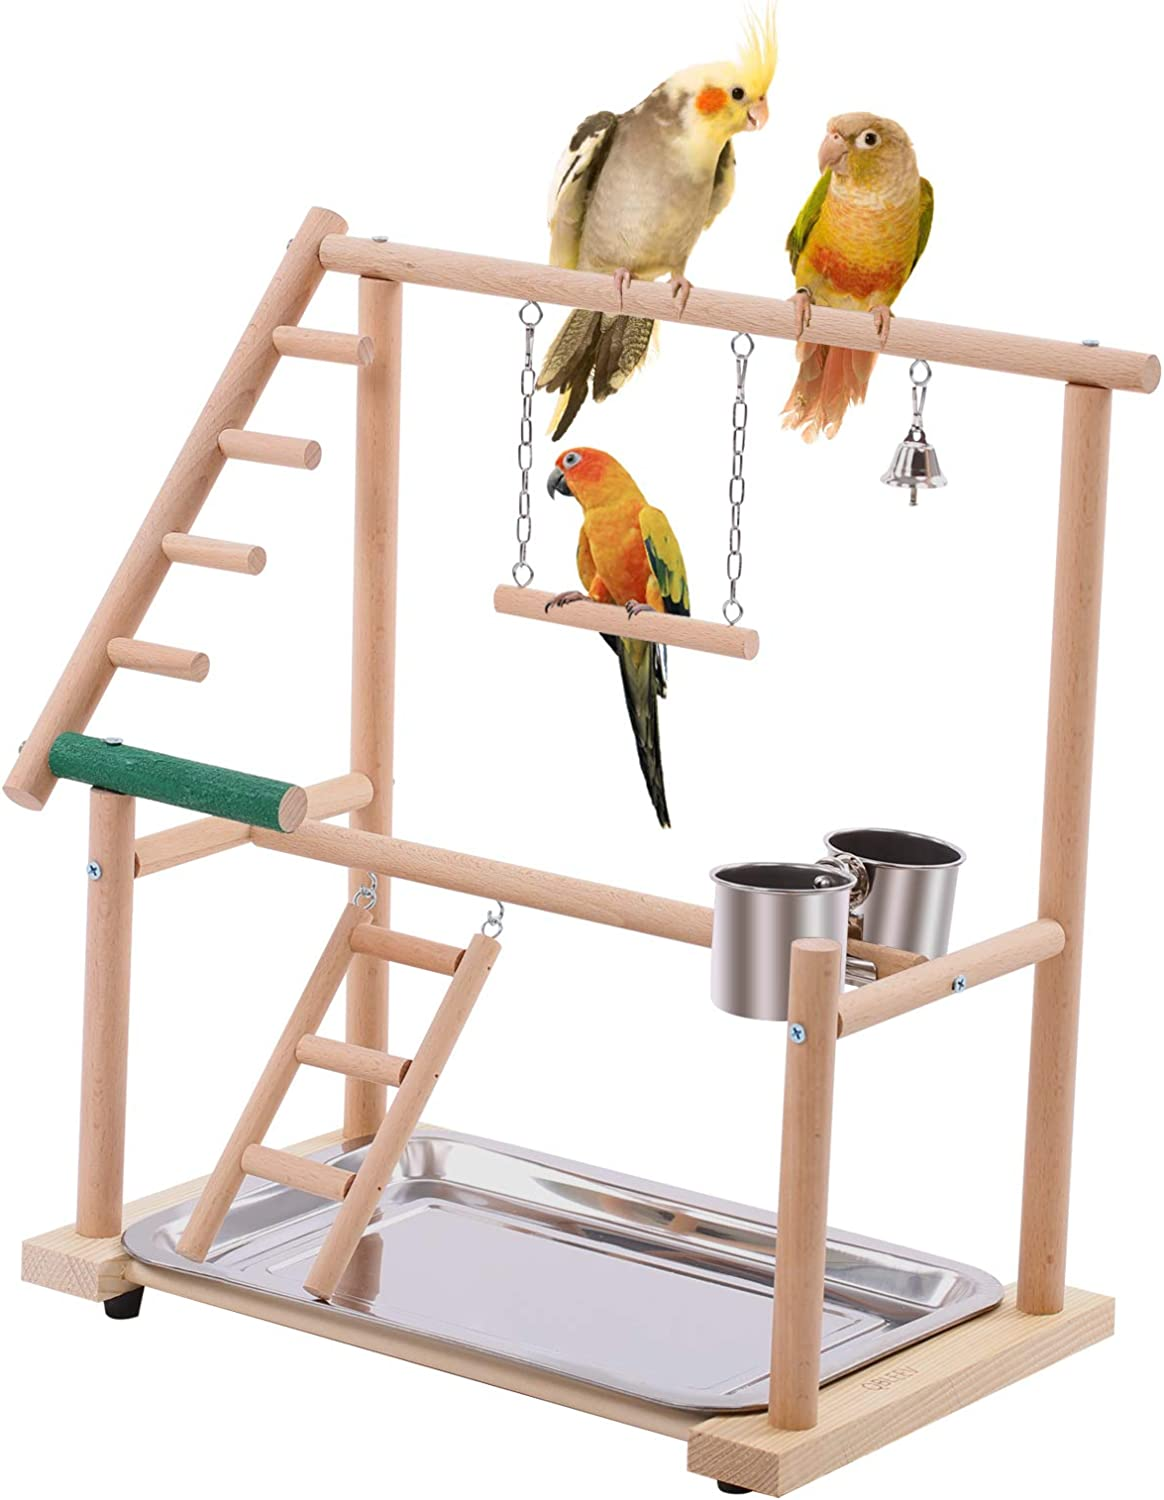 QBLEEV Bird Play Stand Parrots Playground Wooden Stick Perch,Bird Playpen Exercise Gym with Ladder Feeder Cup Bell Swing,Parrot Play Climb Gym for Parakeet Cockatiel Conure(Include a Tray) : Pet Supplies